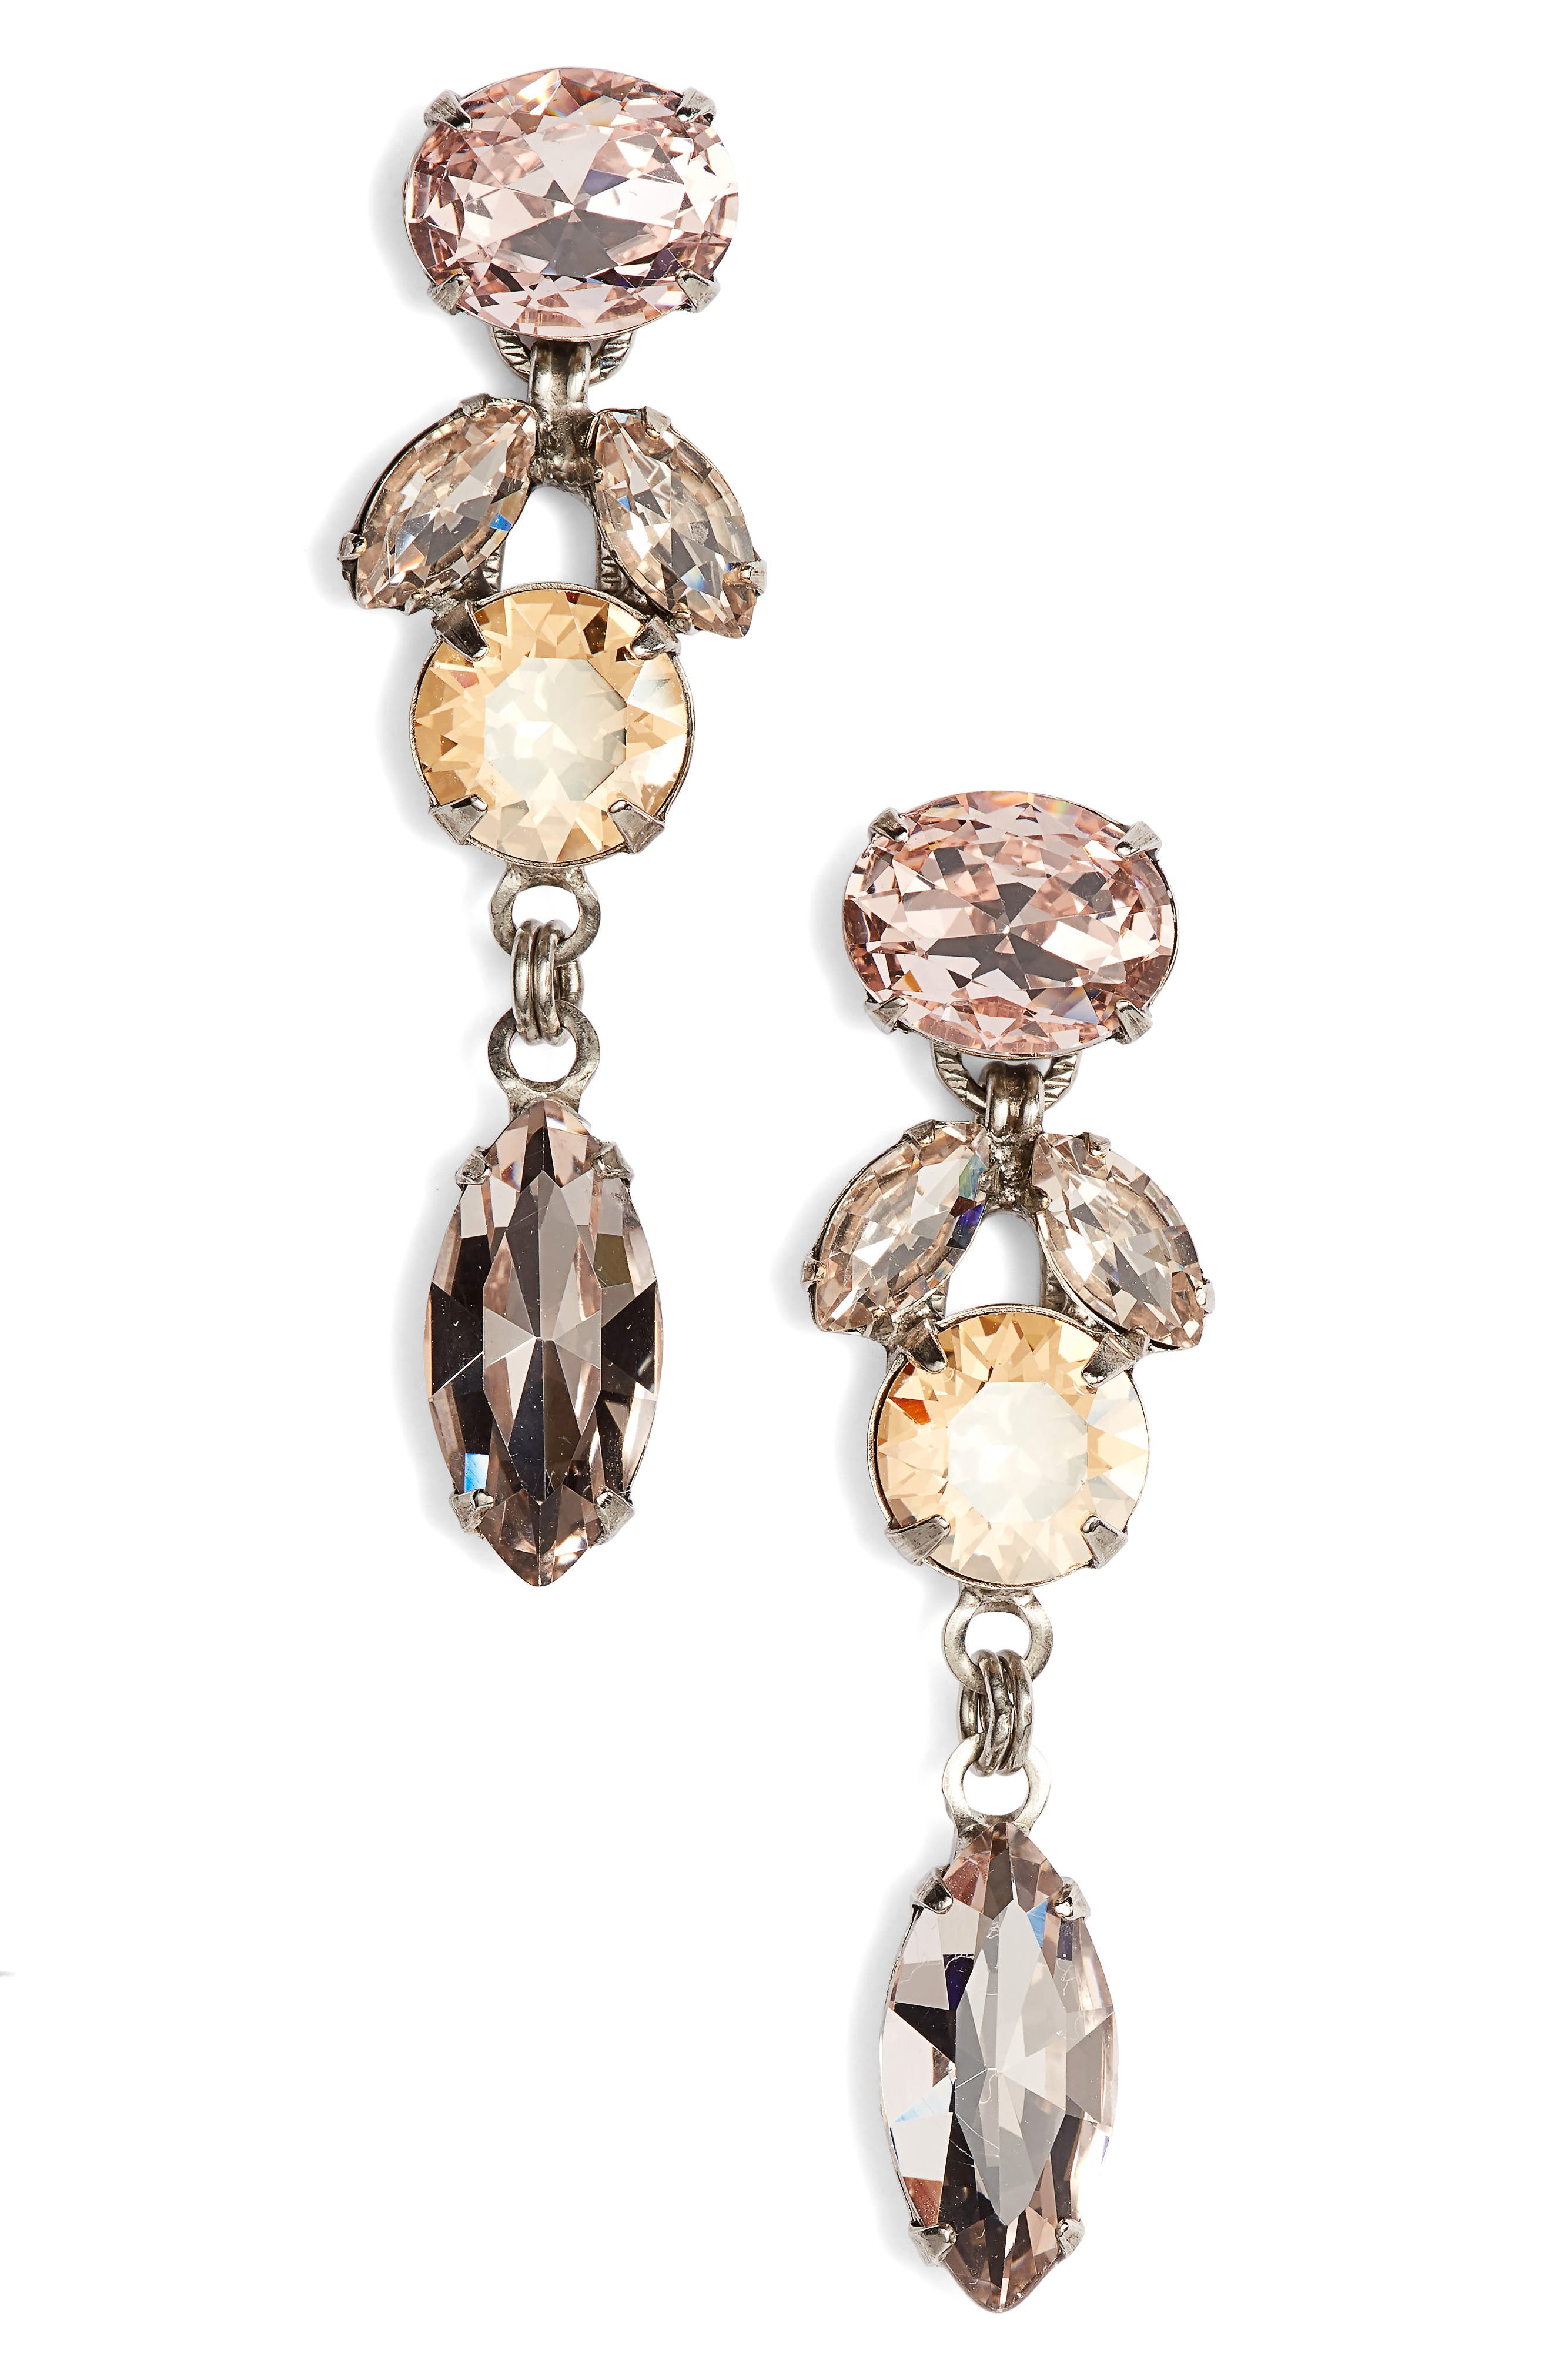 Sparkling Siren Crystal Earrings,                         Main,                         color, Pink